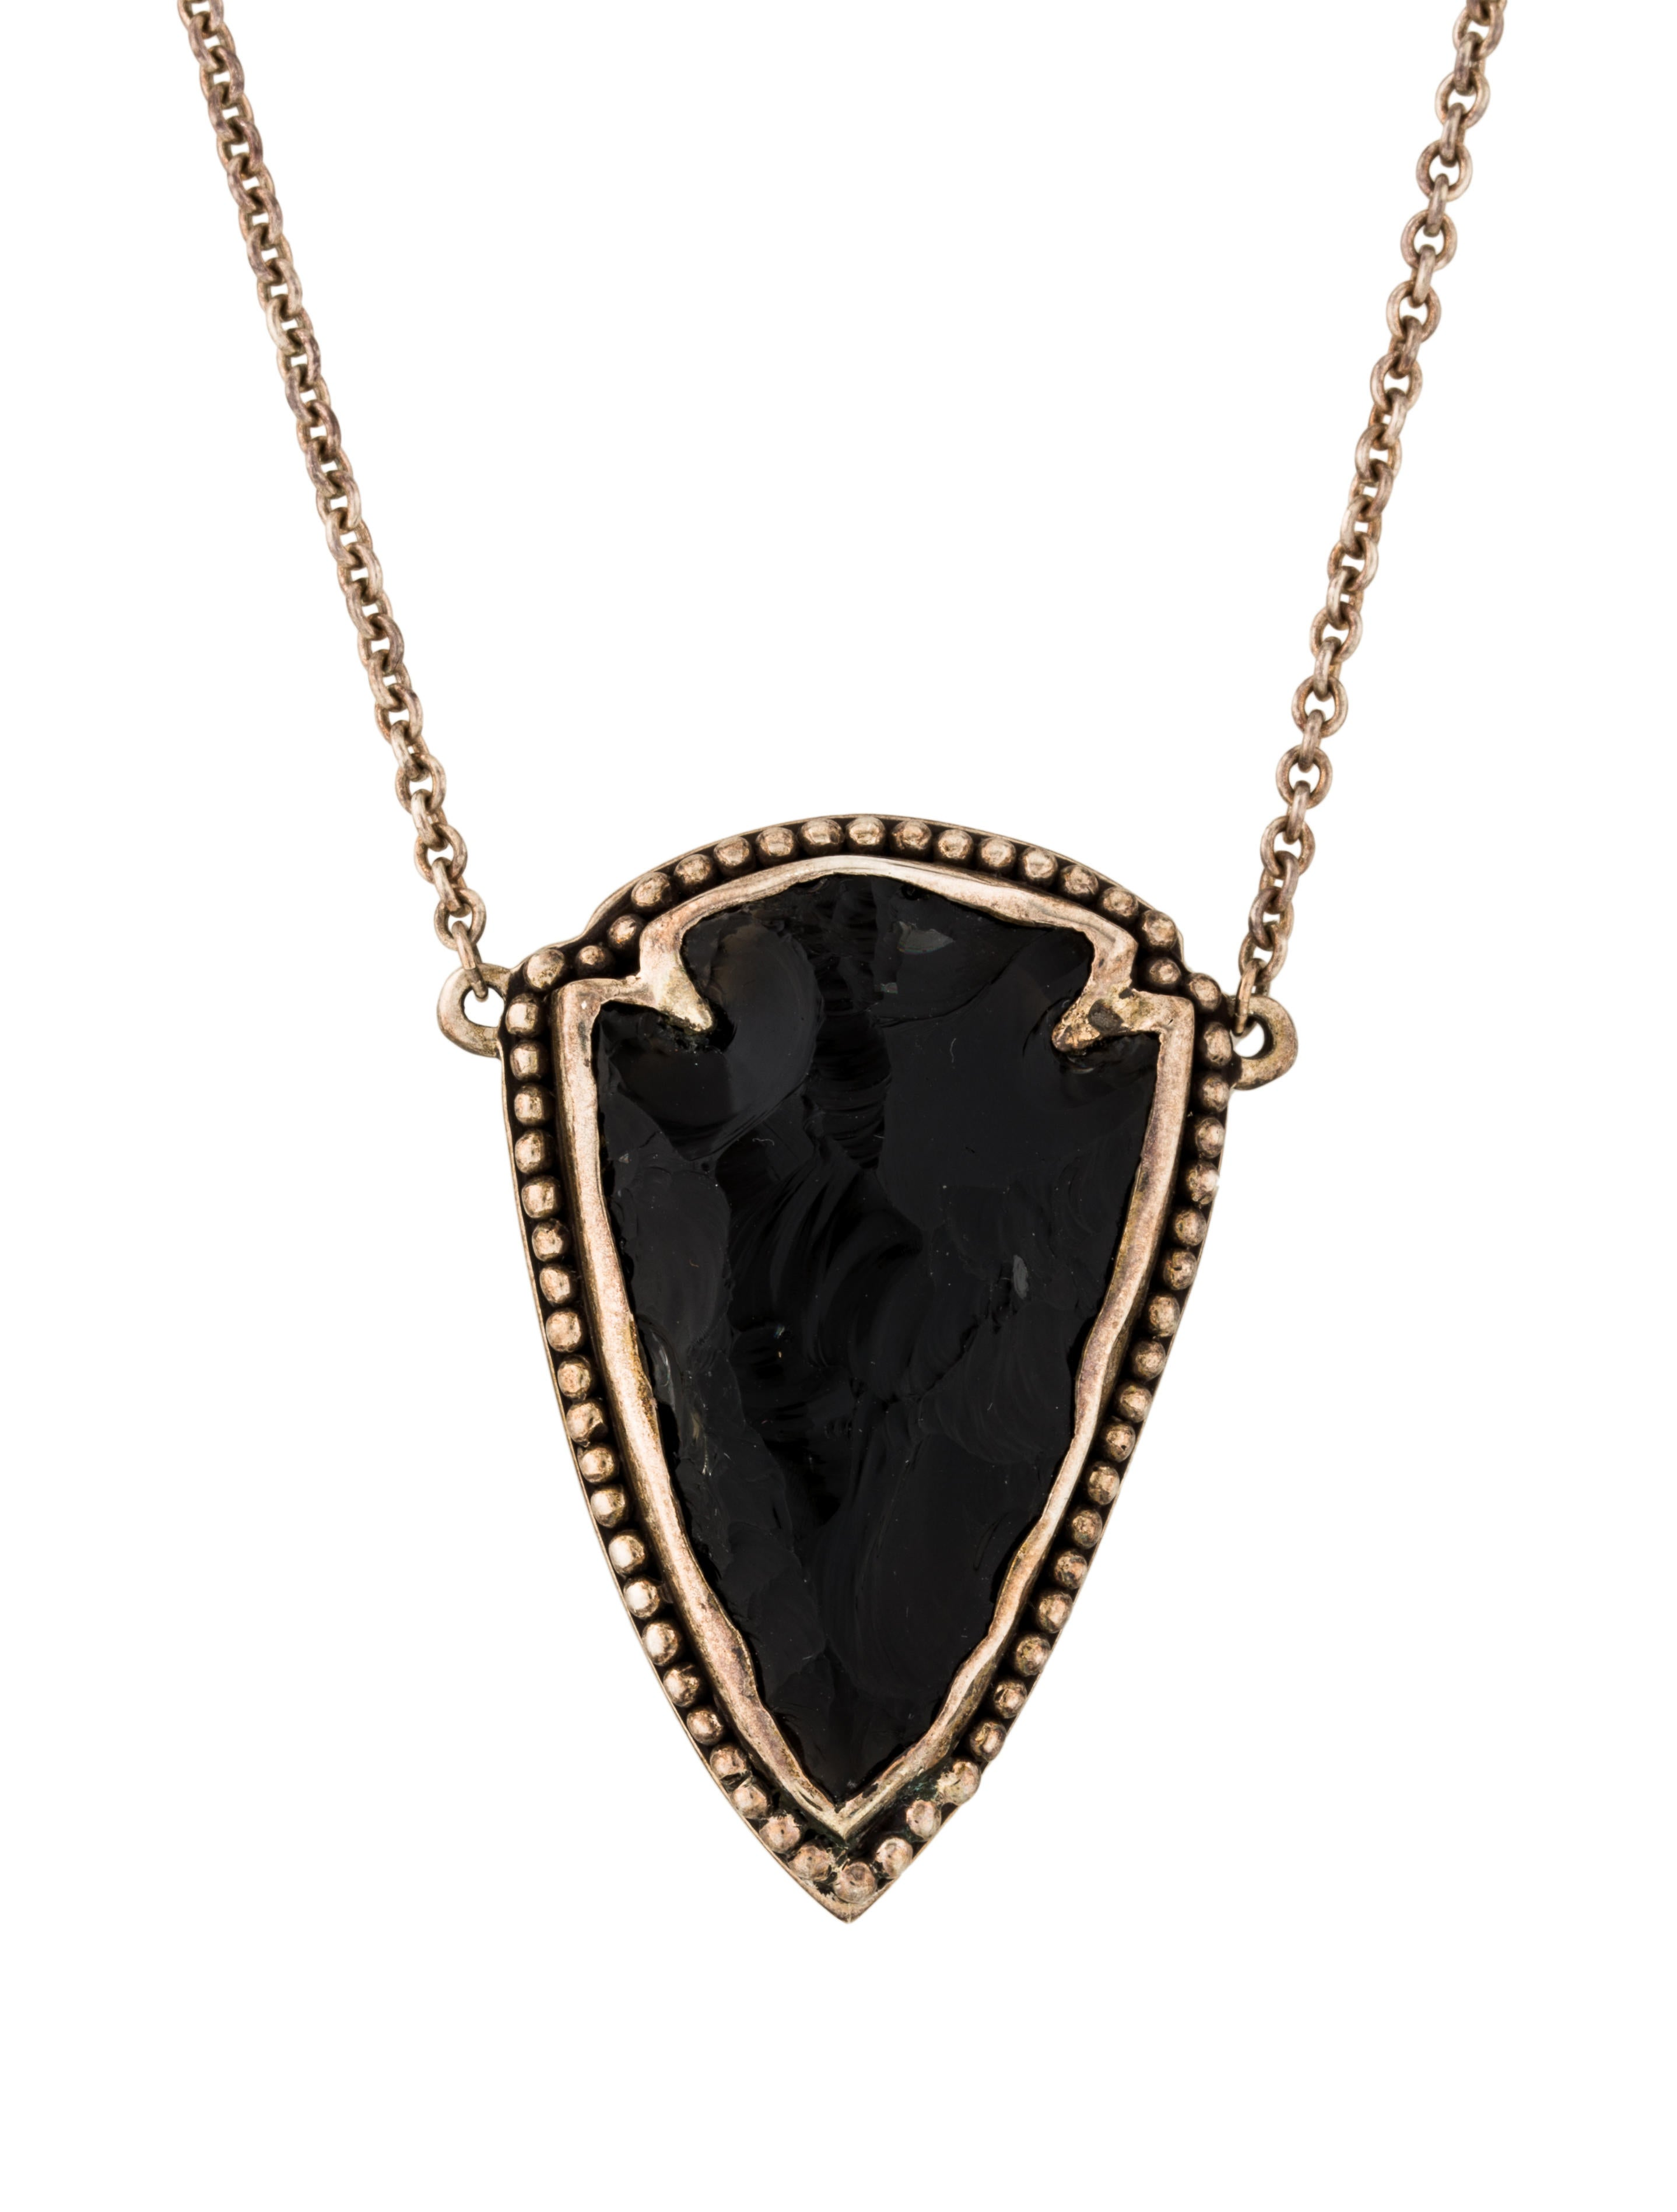 Pamela love obsidian arrowhead pendant necklace for Pamela love jewelry designer